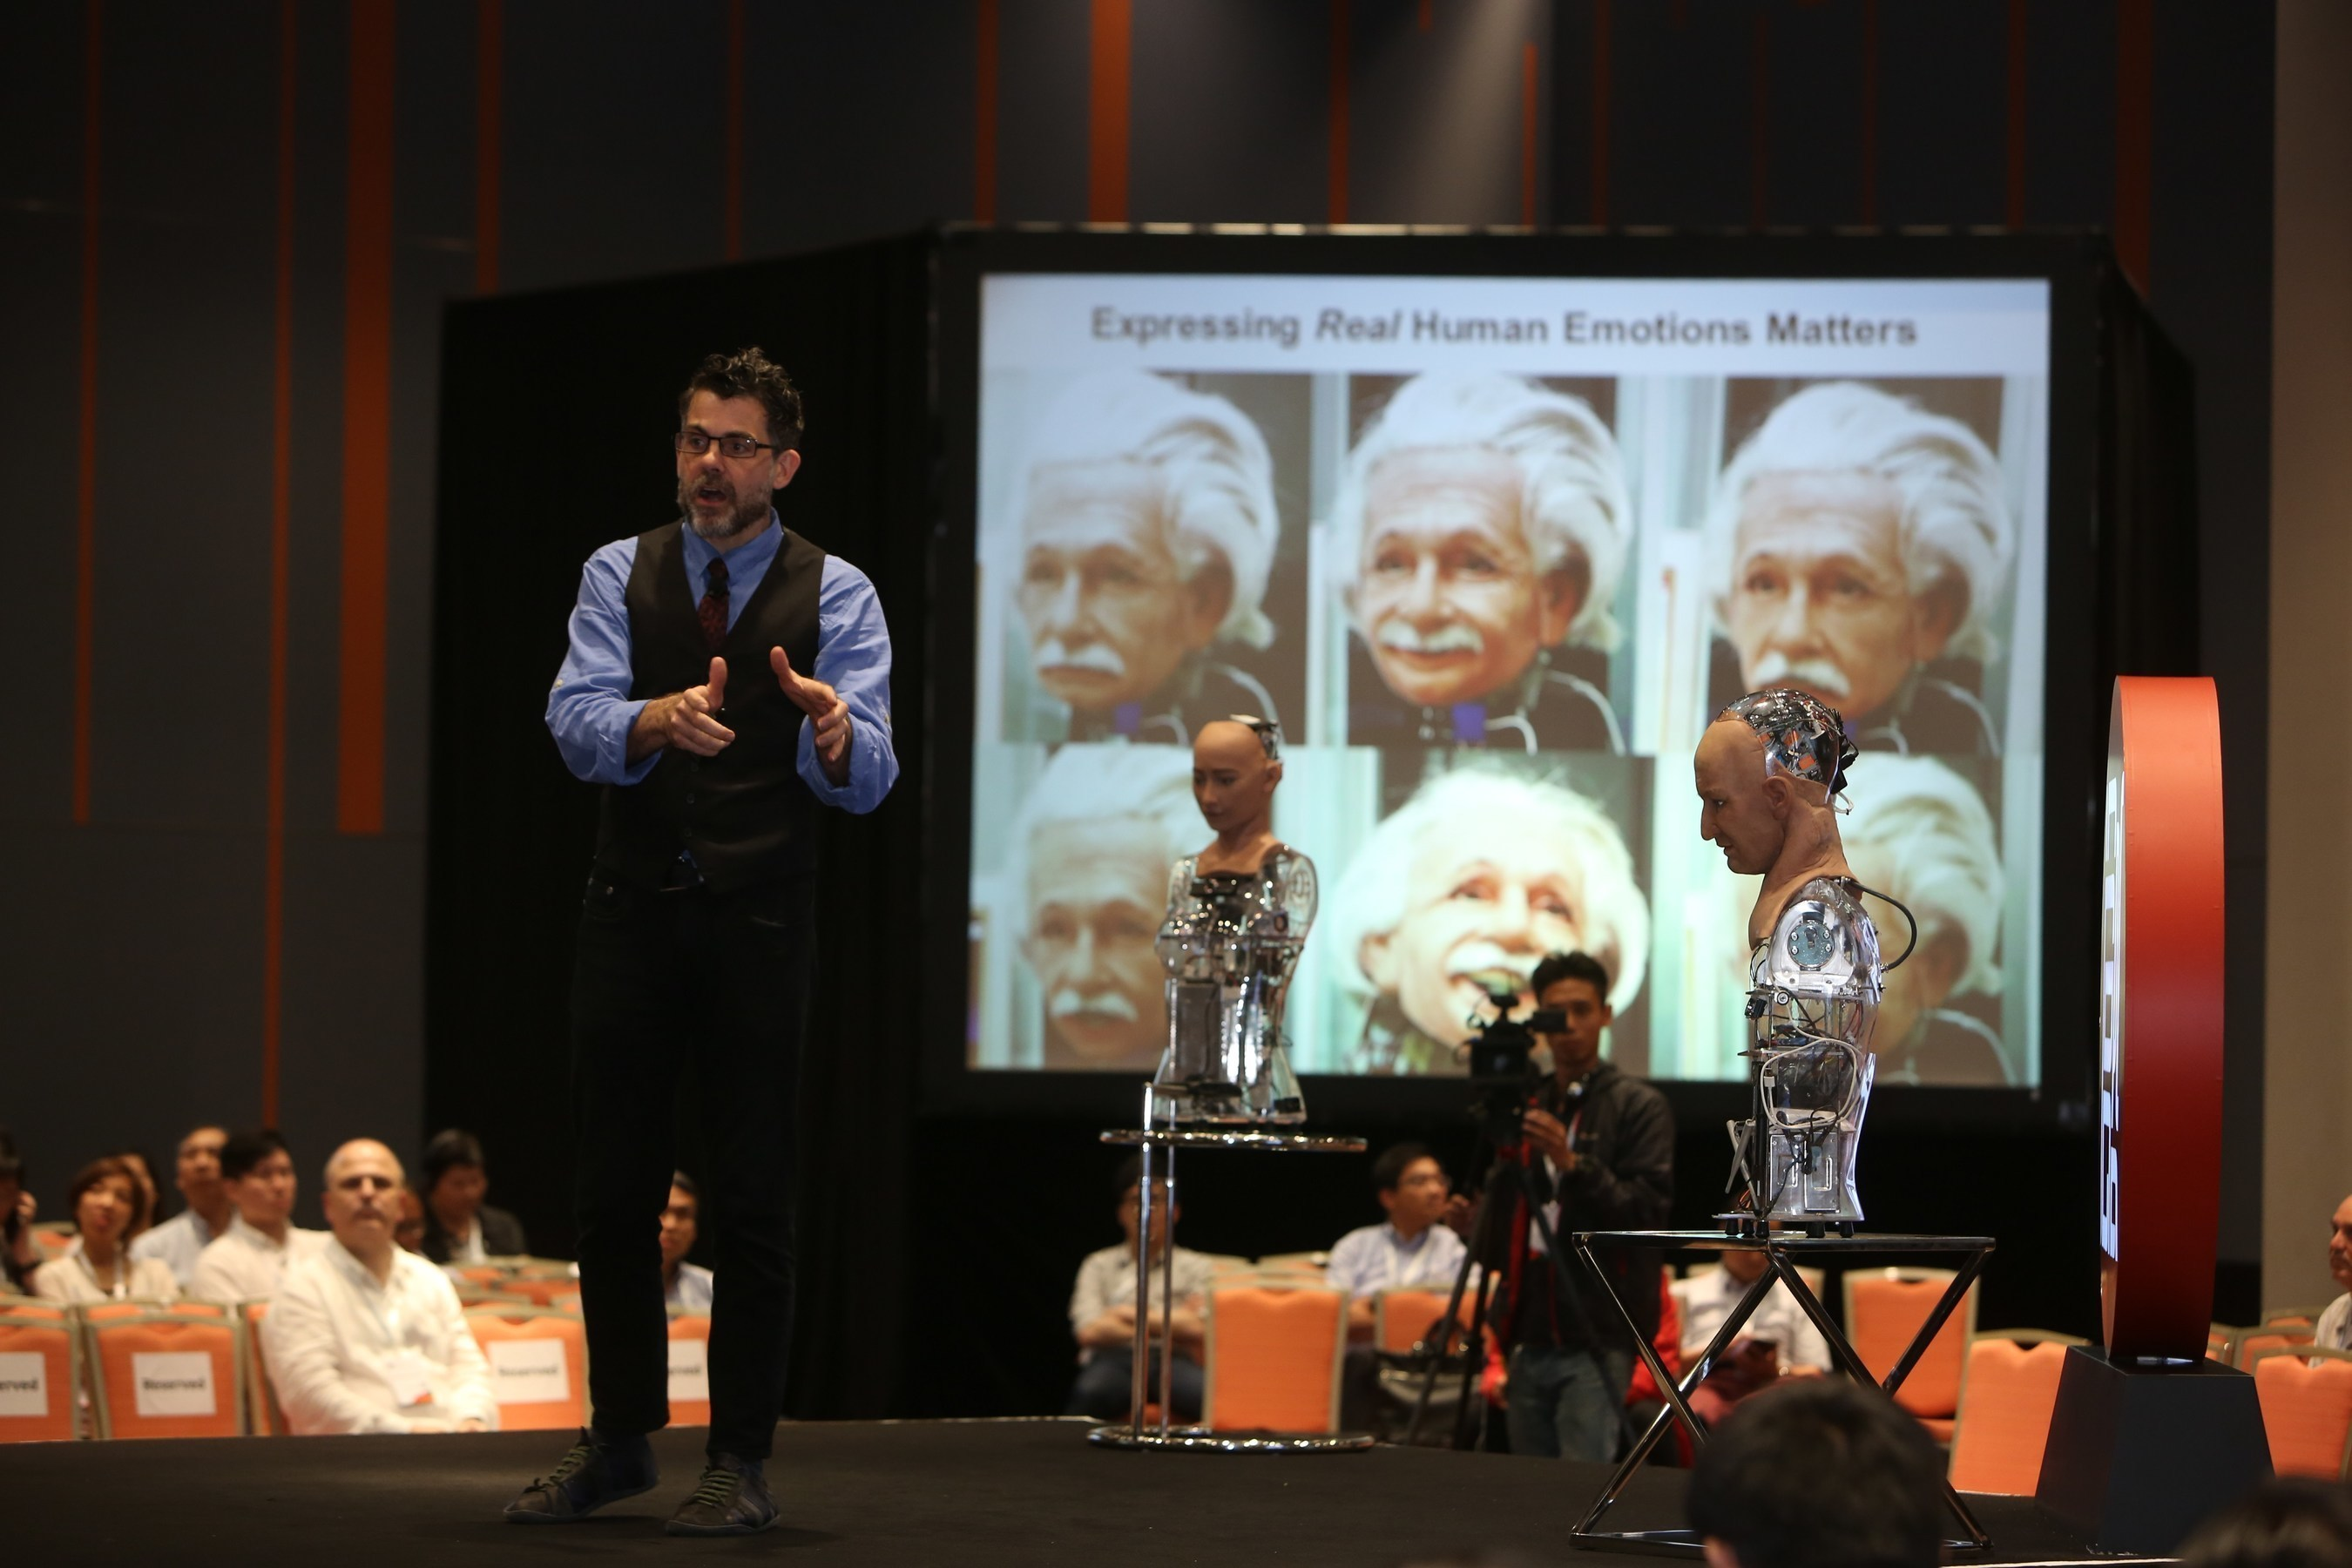 Not only can robots have emotions, they may even have compassion in the future. David Hanson, founder of Science Park partner company Hanson Robotics, showed the audience the vivid expressions and possibilities that Hans and Sophia the two humanoids his company developed have.